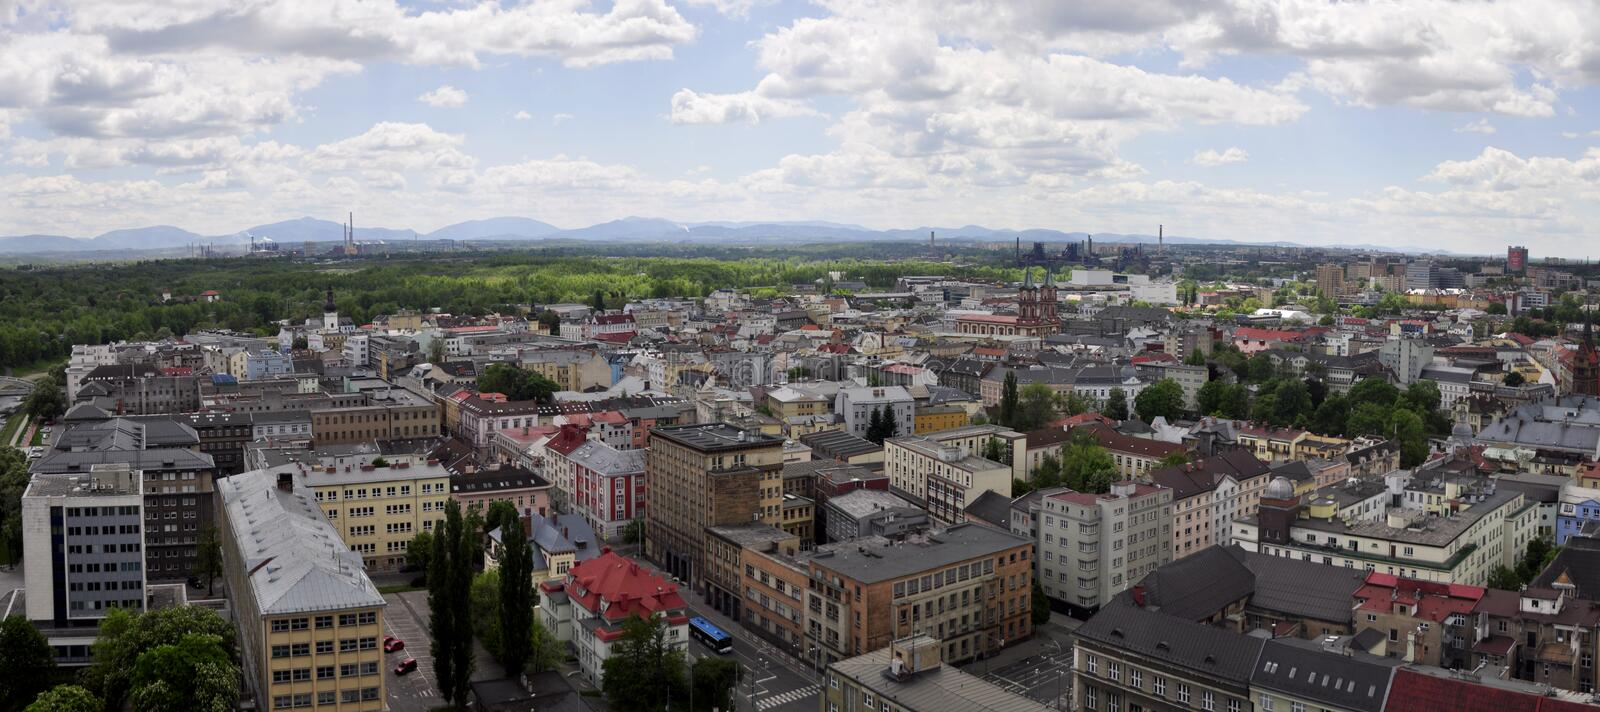 Ostrava city. View from City Hall to the surrounding Ostrava - Czech Republic royalty free stock image